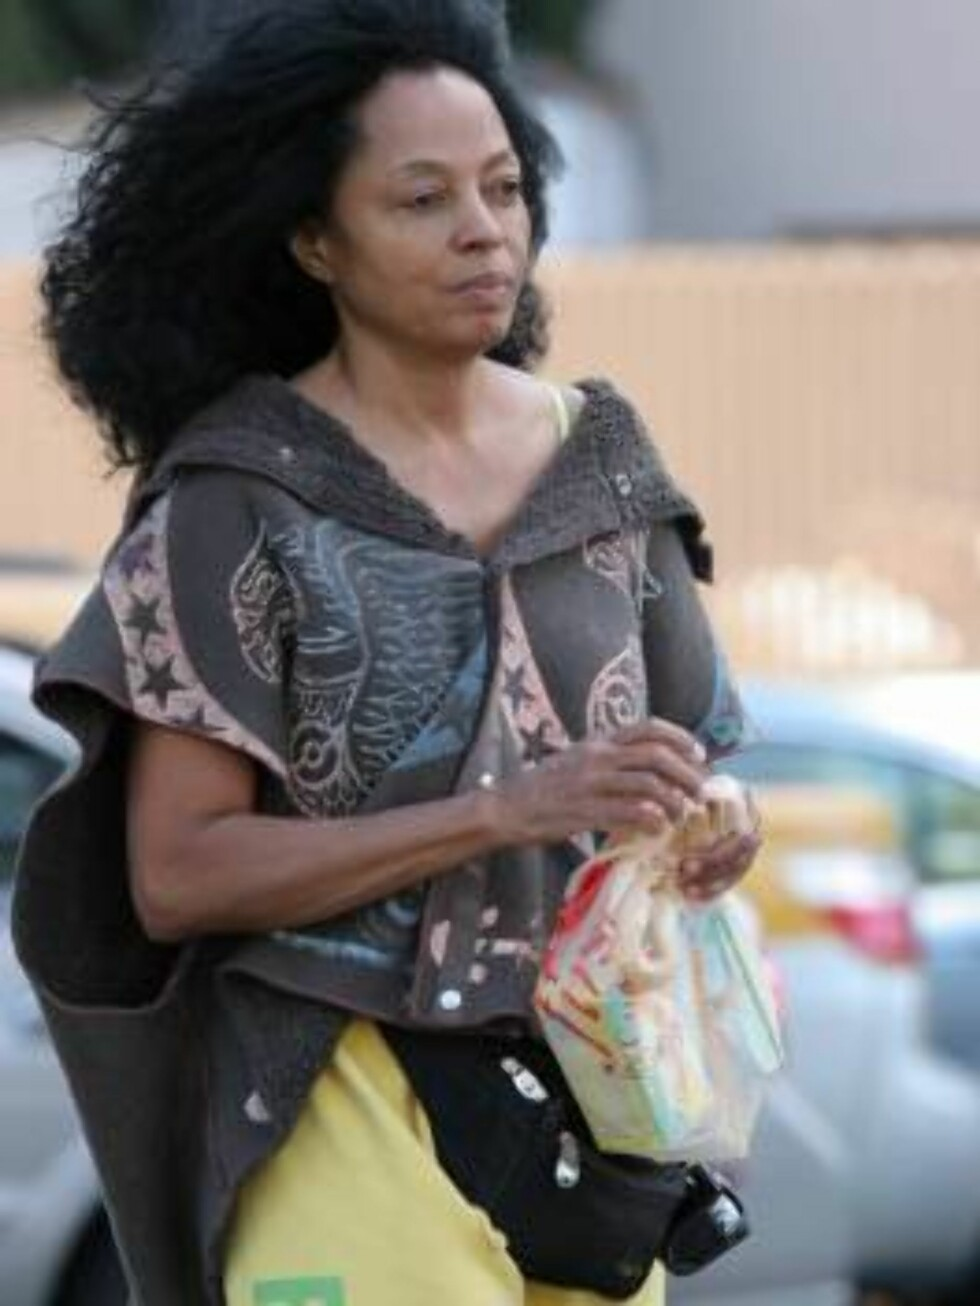 Out of rehab Diana Ross buying butter in Hollywood. The star is supposed to perform with Christina Aguilera in november. October 10, 2005 X17agency EXCLUSIVE / ALL OVER PRESS Foto: All Over Press